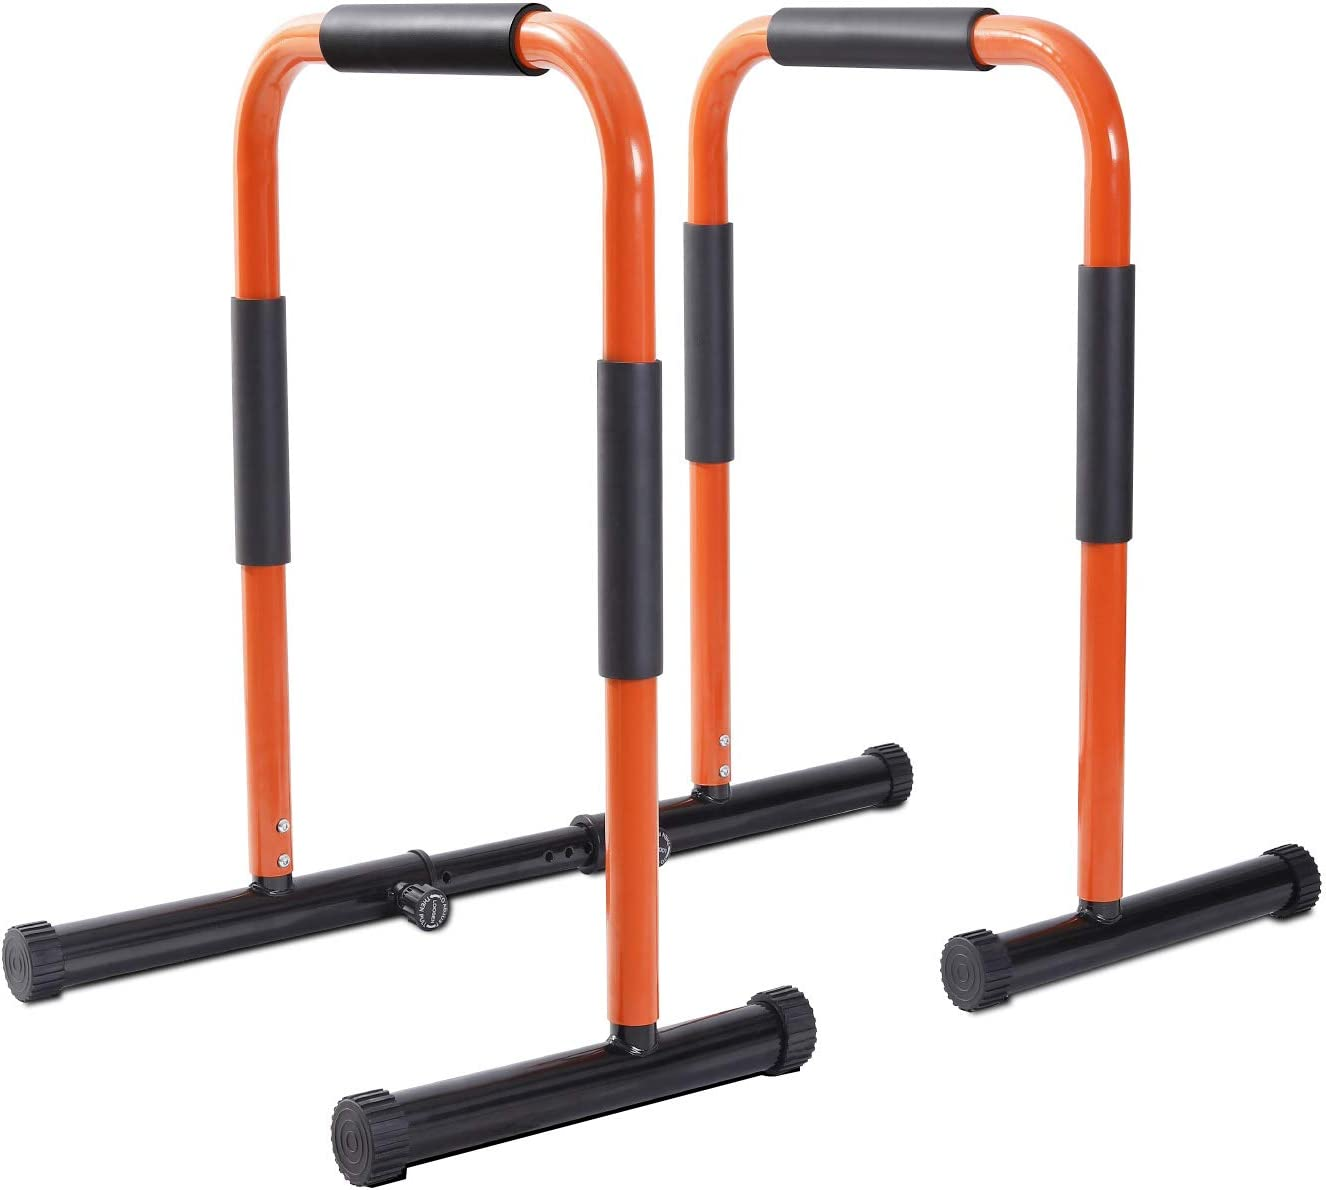 Zero Dip Station Dip Stands Dip Bar Parallette Push Up Stand with Connector Bar Orange